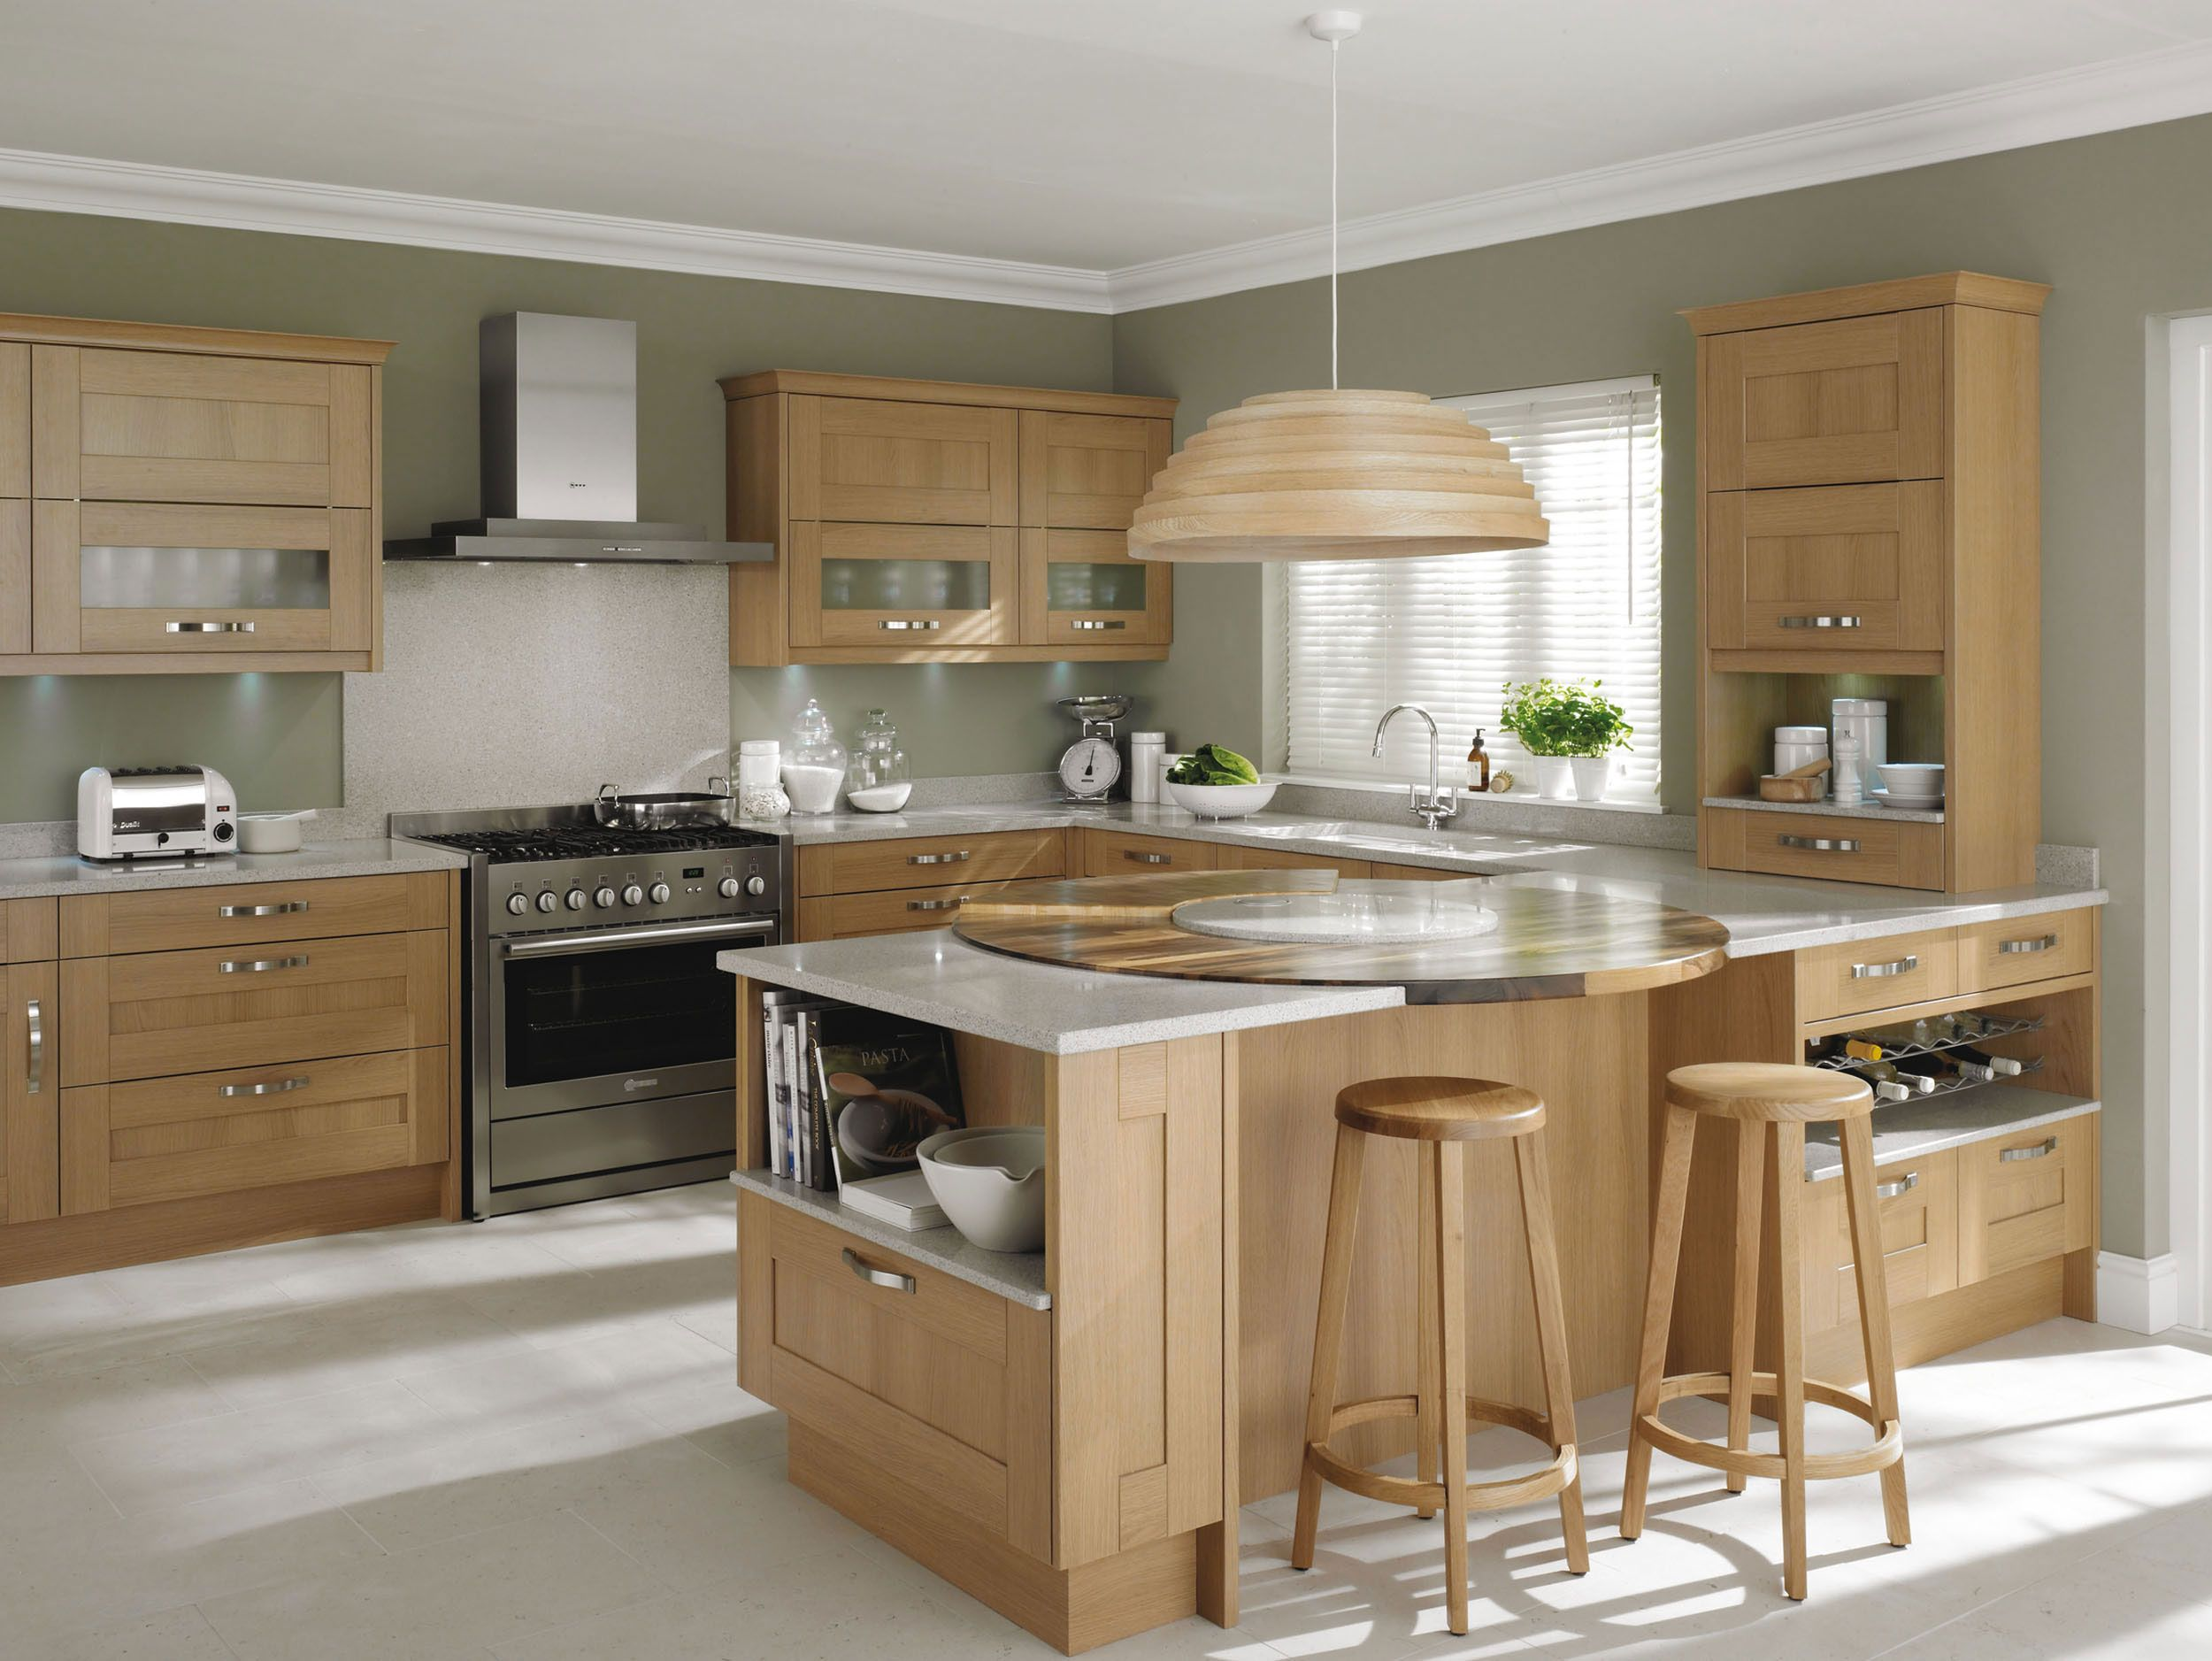 Oak kitchen ideas google search home kitchens for Contemporary oak kitchen cabinets